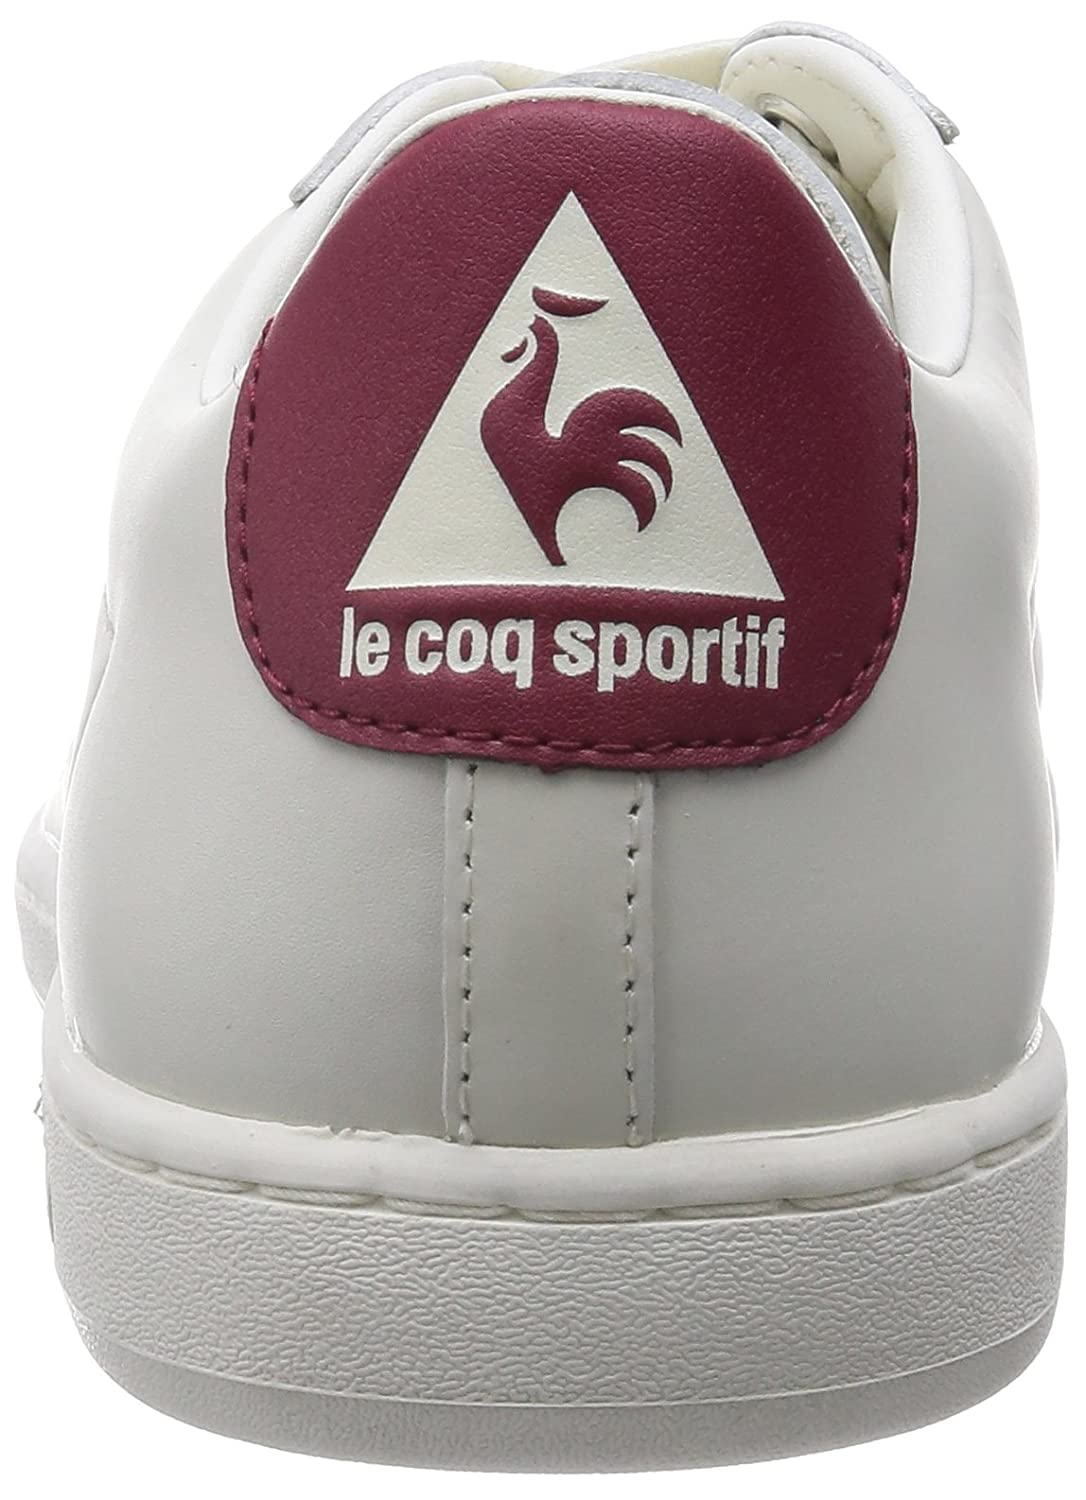 Le Coq Sportif Arthur Ashe Int Low Lace L, Sneakers Basses Adulte Mixte - Multicolore (Ruby Wine), 44 EU